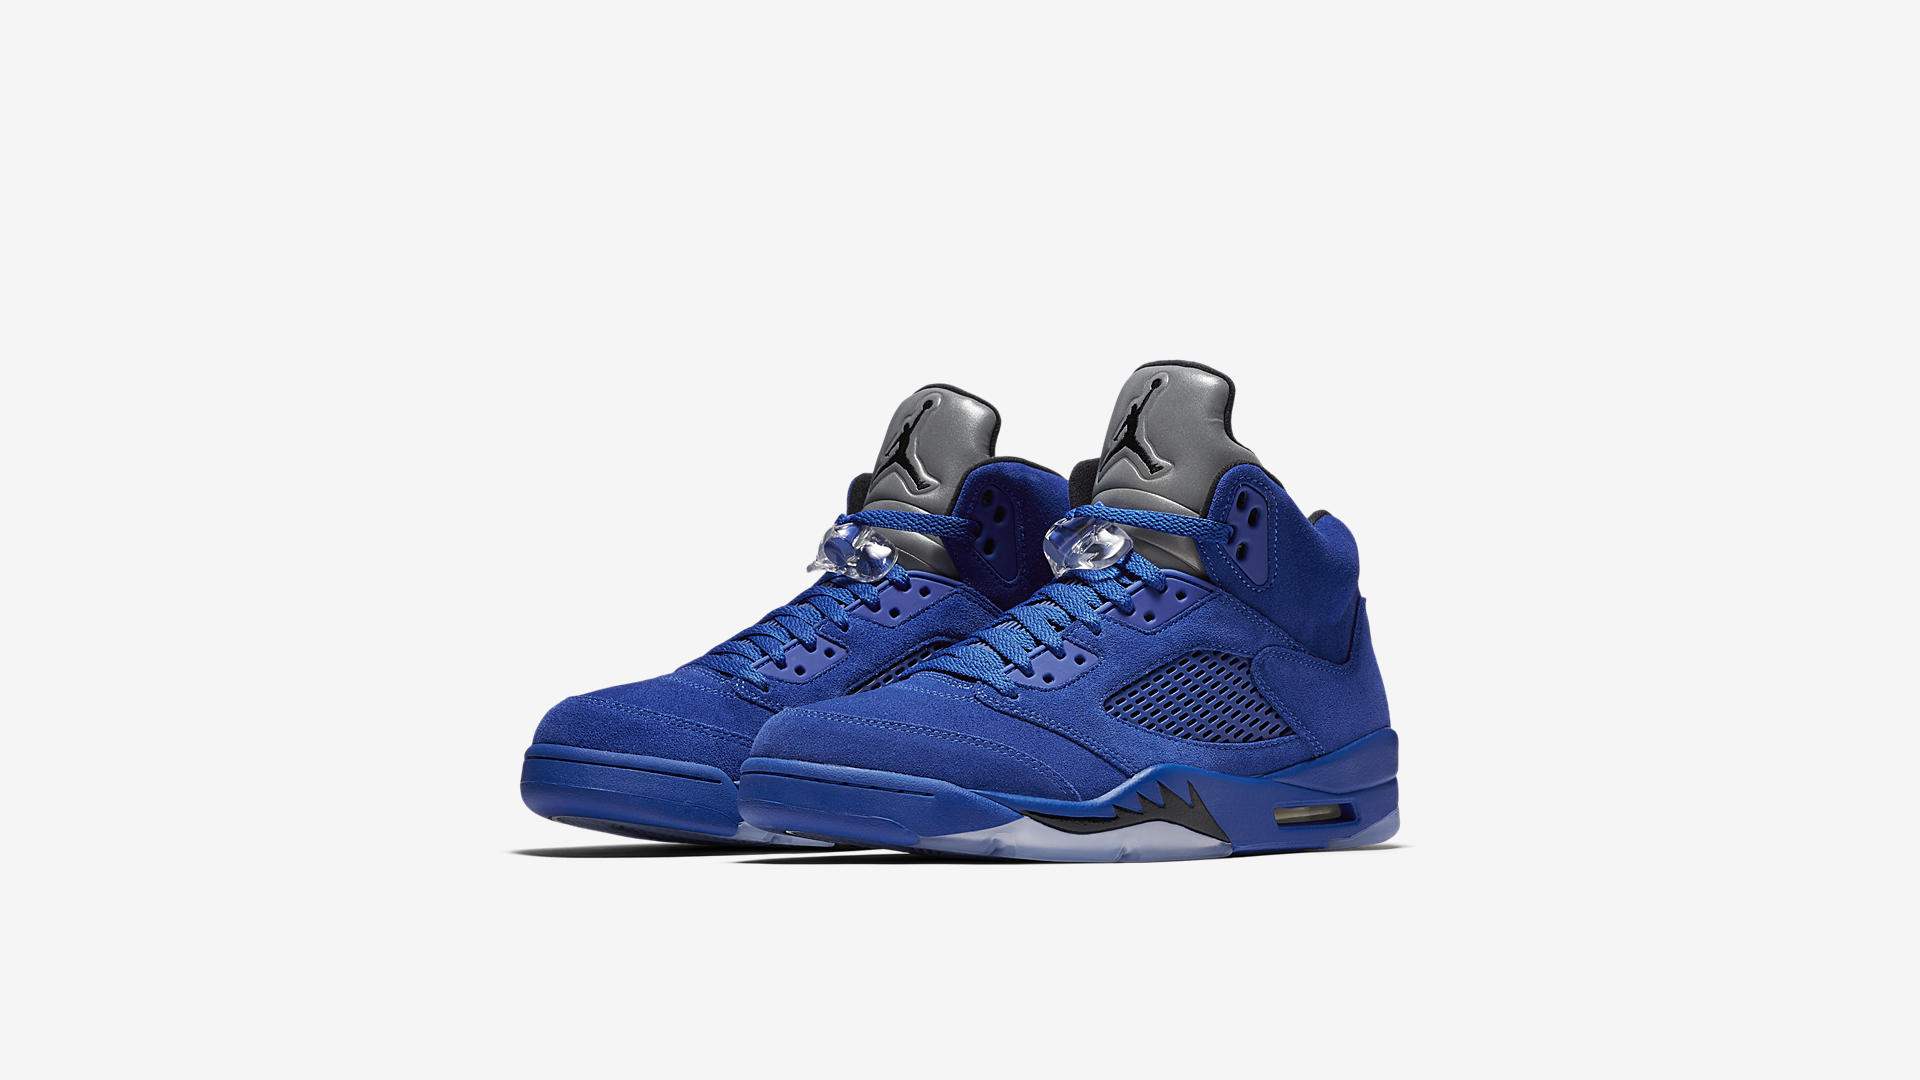 f90caa86a82d7 Air Jordan 5 Retro